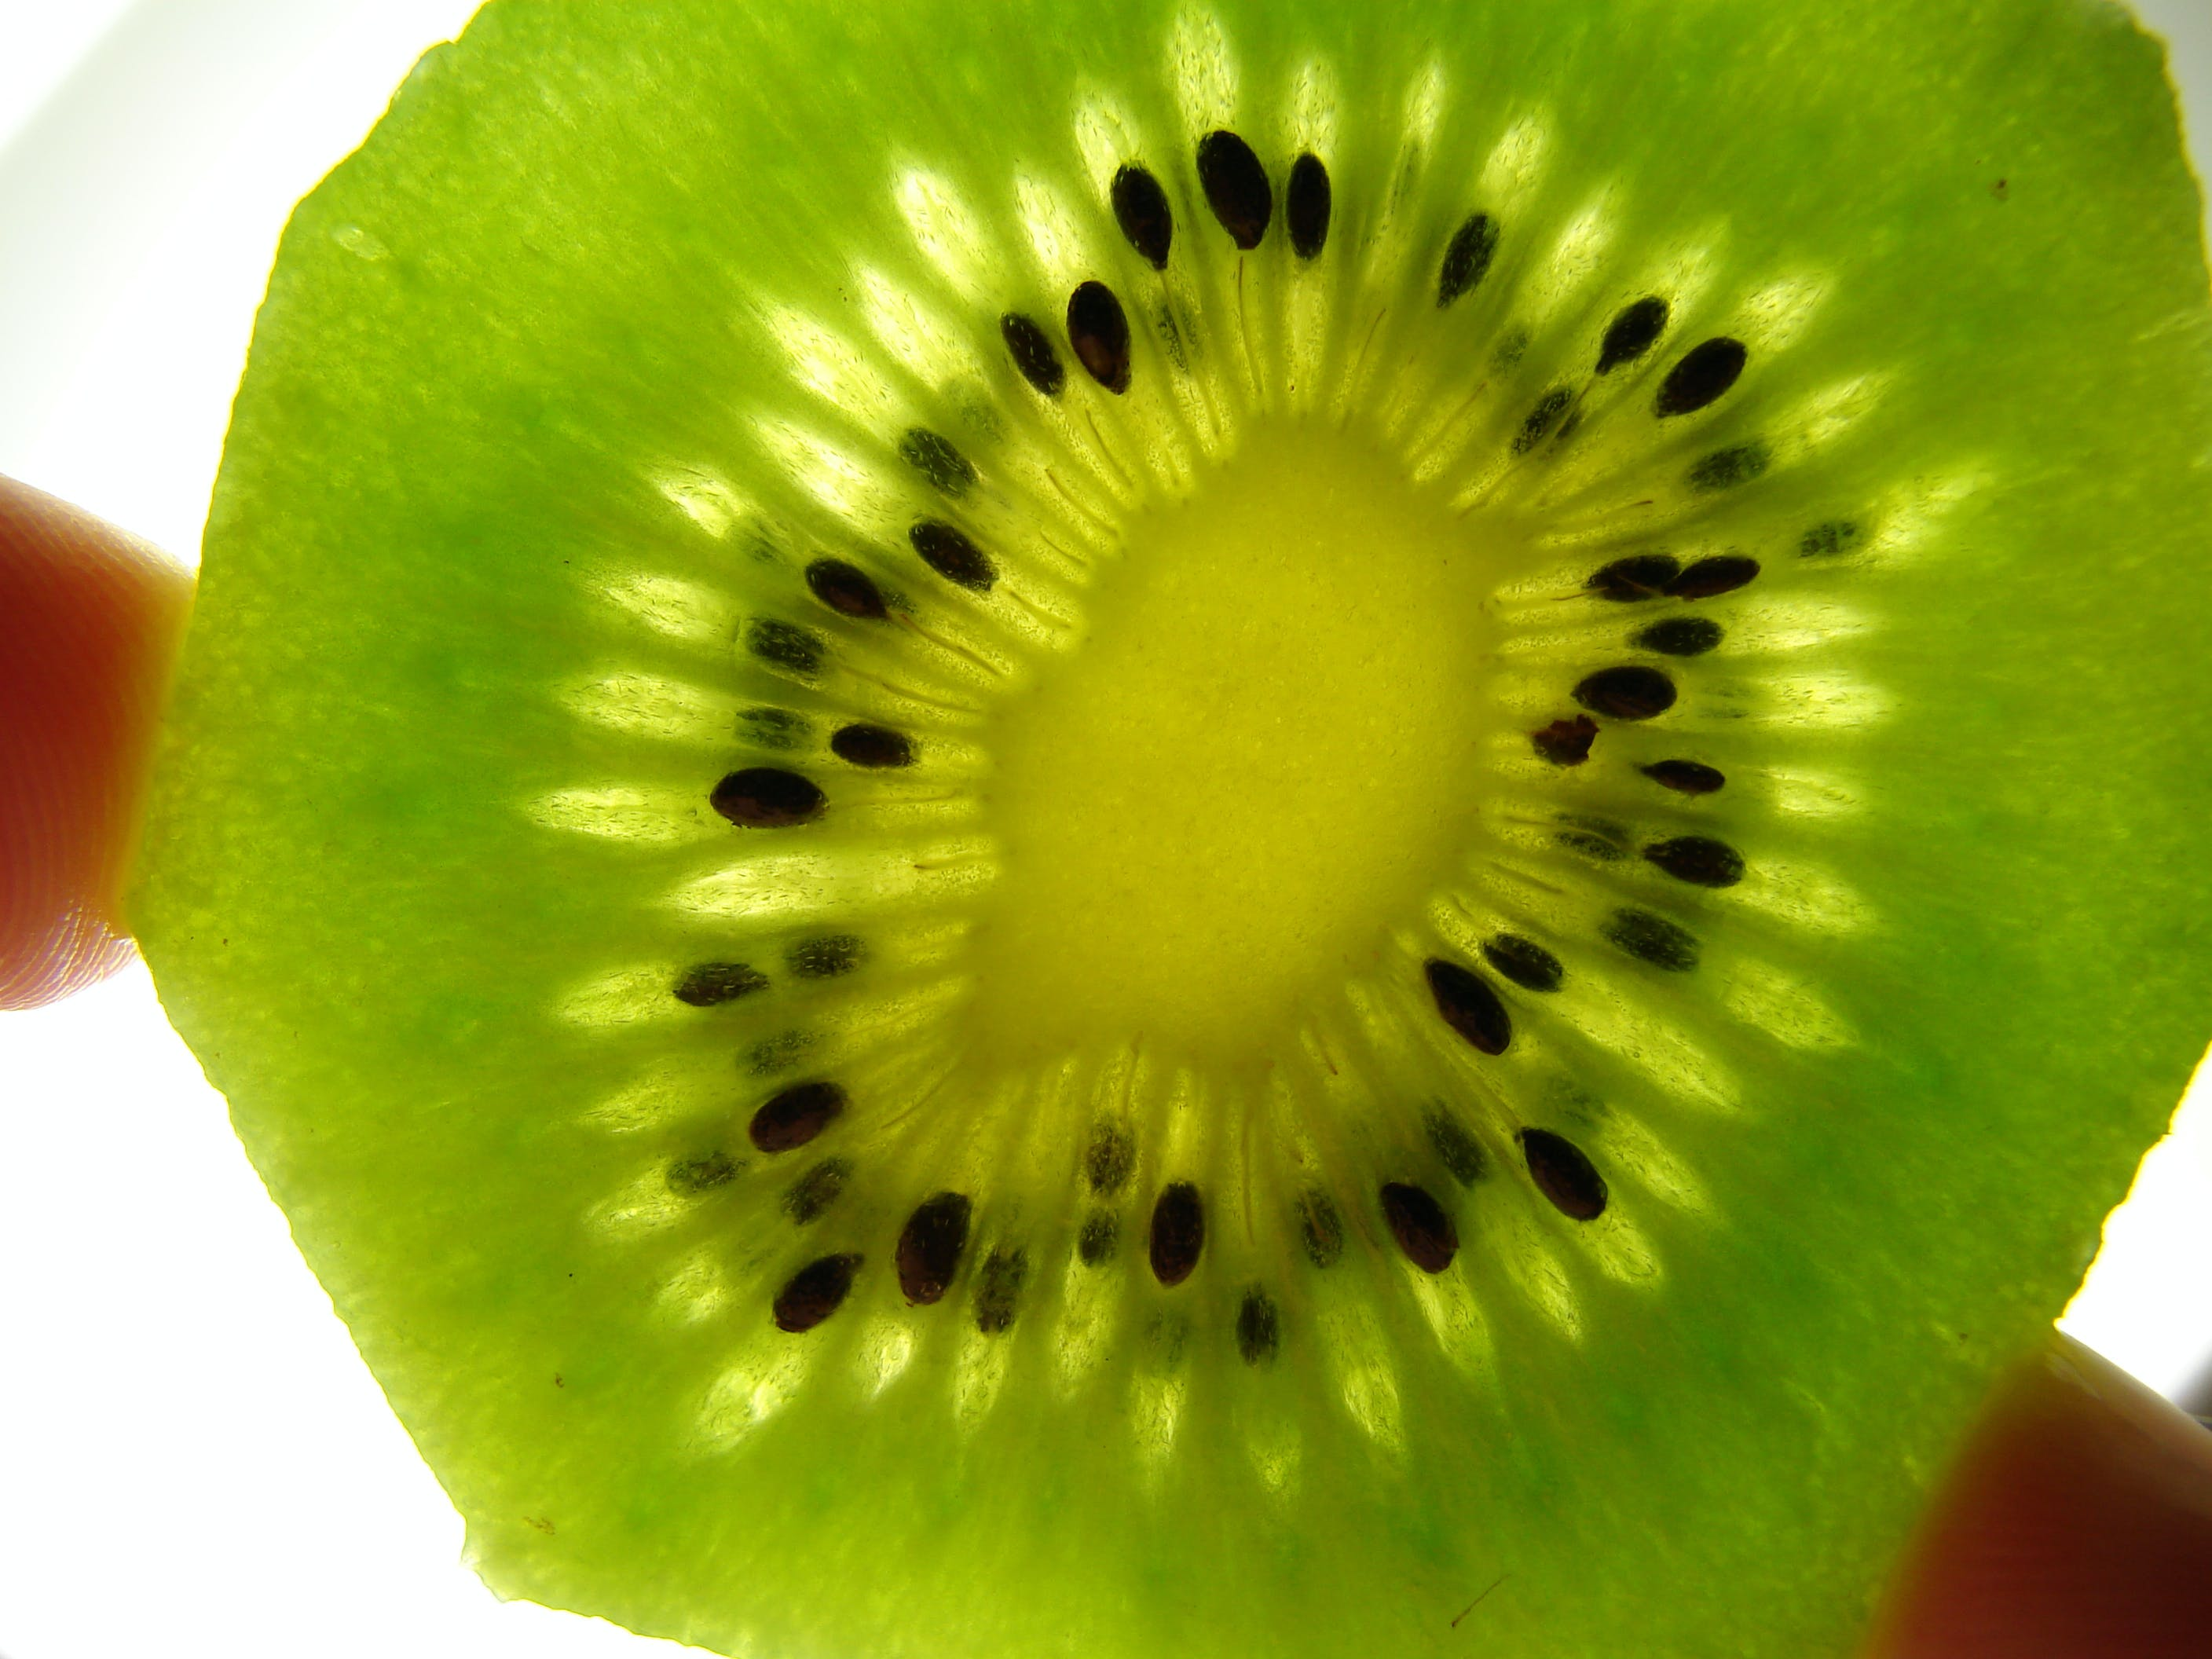 Free stock photo of close-up view, macro, fruit, kiwi